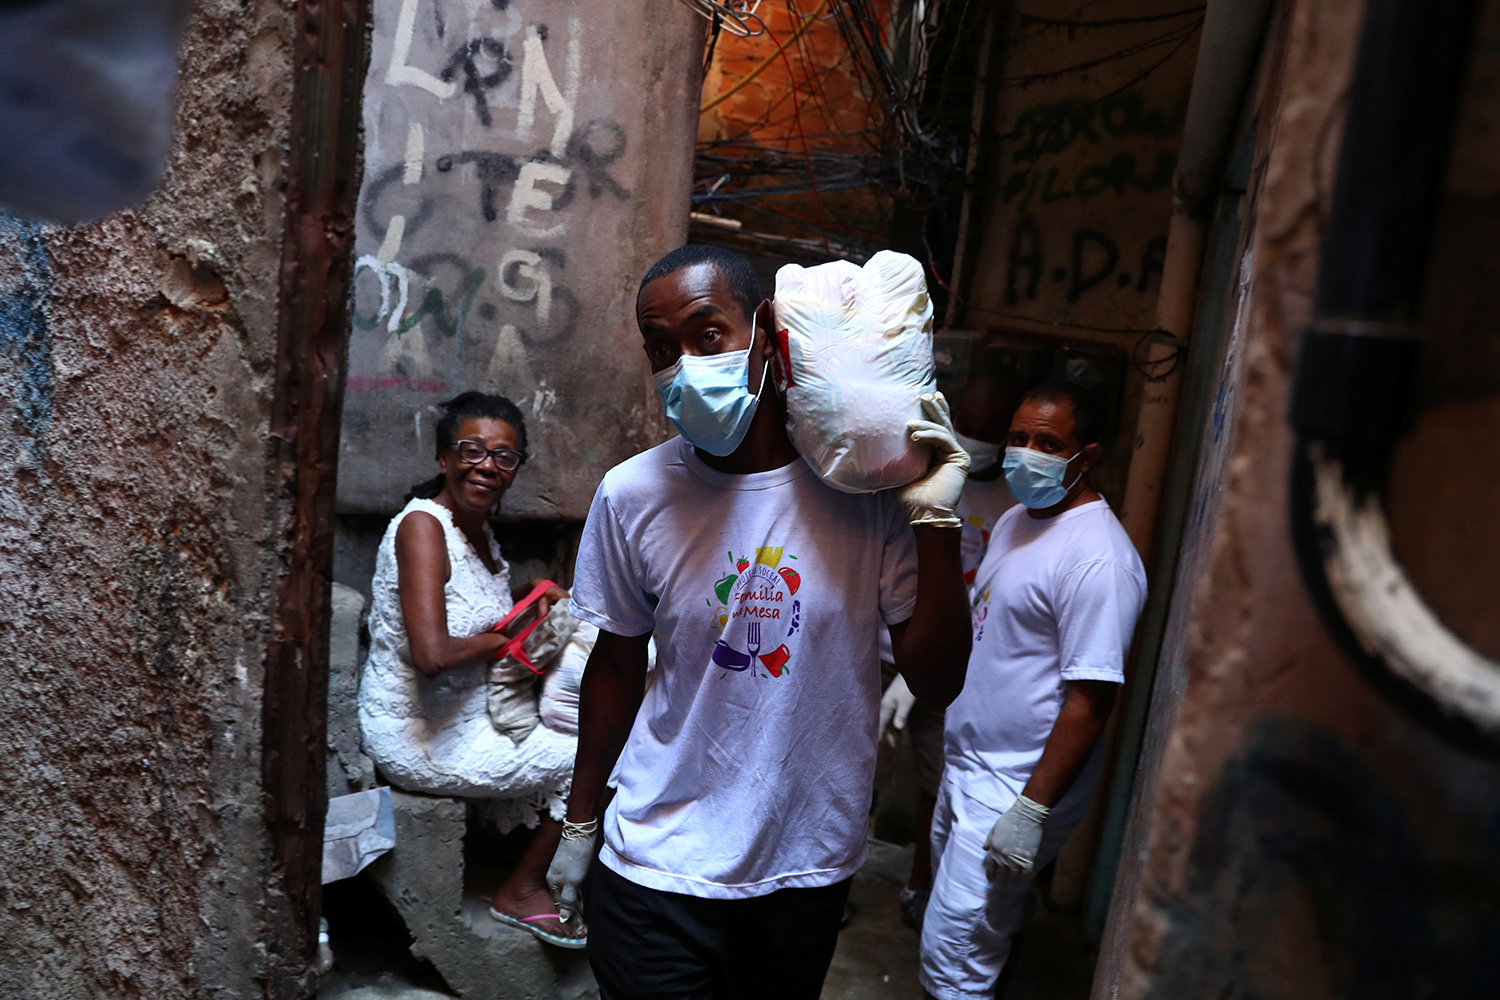 A volunteer carries donated aid for poor families at the Rocinha slum as the coronavirus disease (COVID-19) outbreak continues in Rio de Janeiro, Brazil March 27, 2020. REUTERS/Pilar Olivares